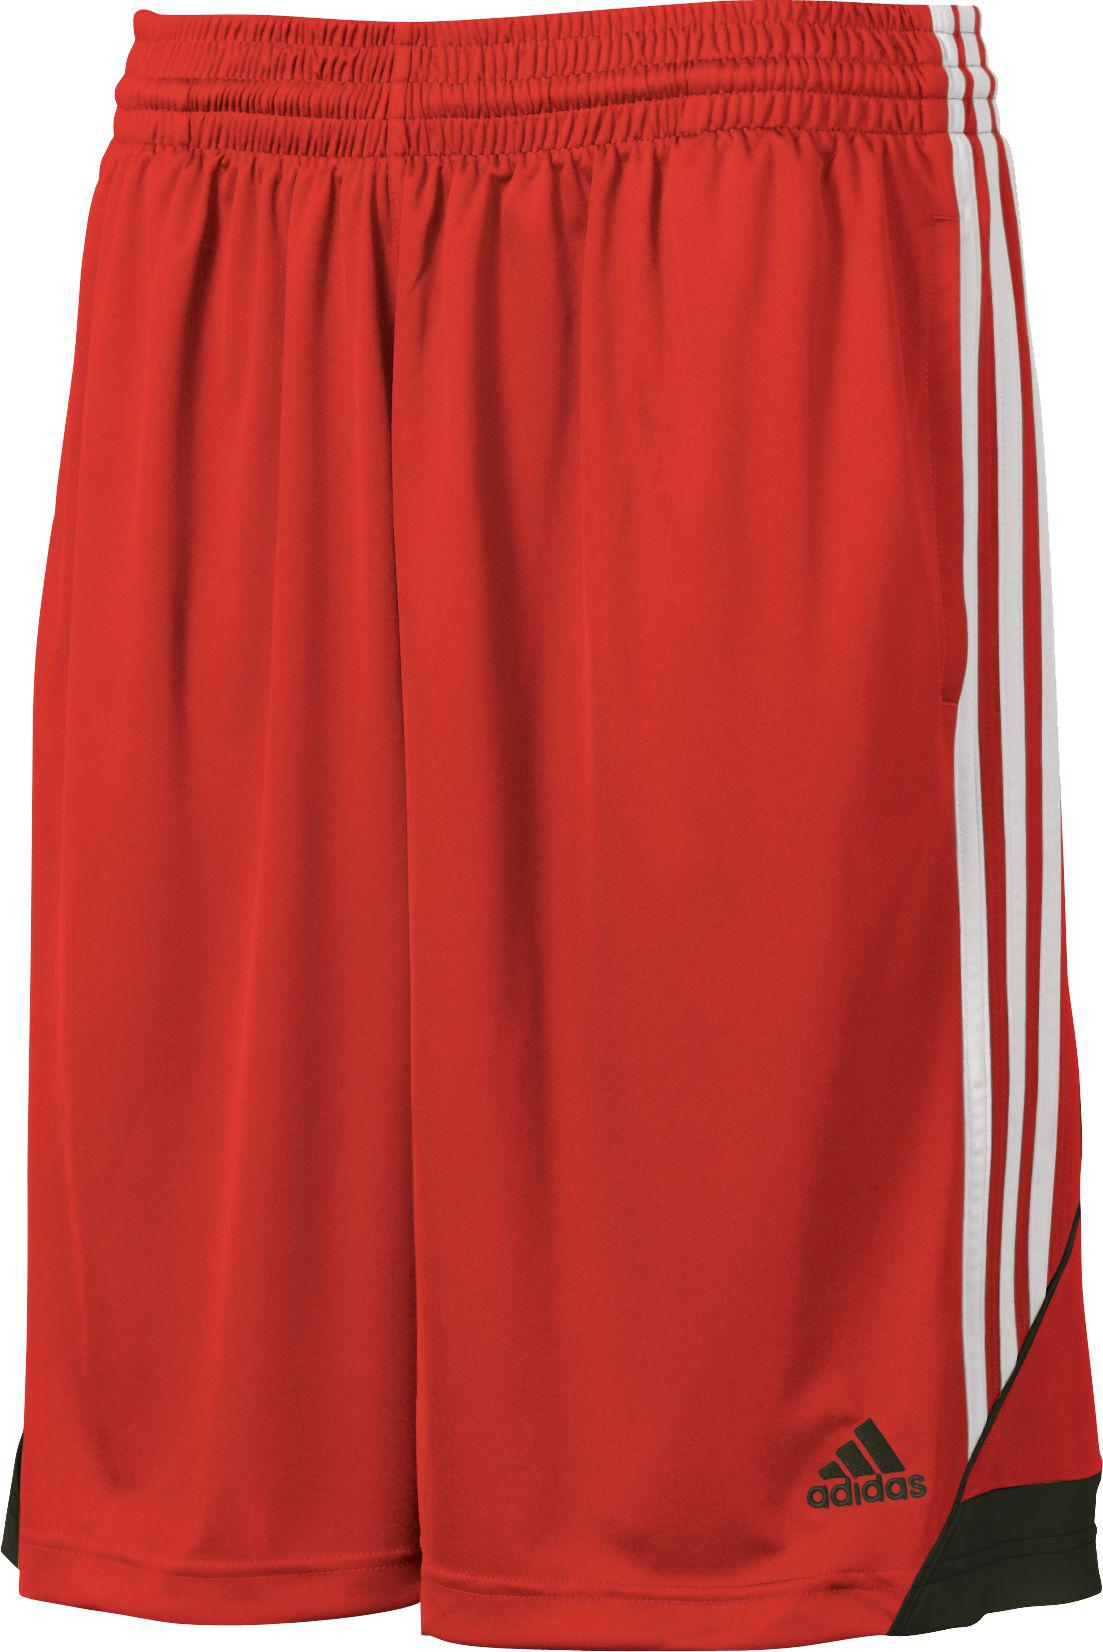 78411a49f adidas Originals 3g Speed Basketball Shorts in Red for Men - Lyst